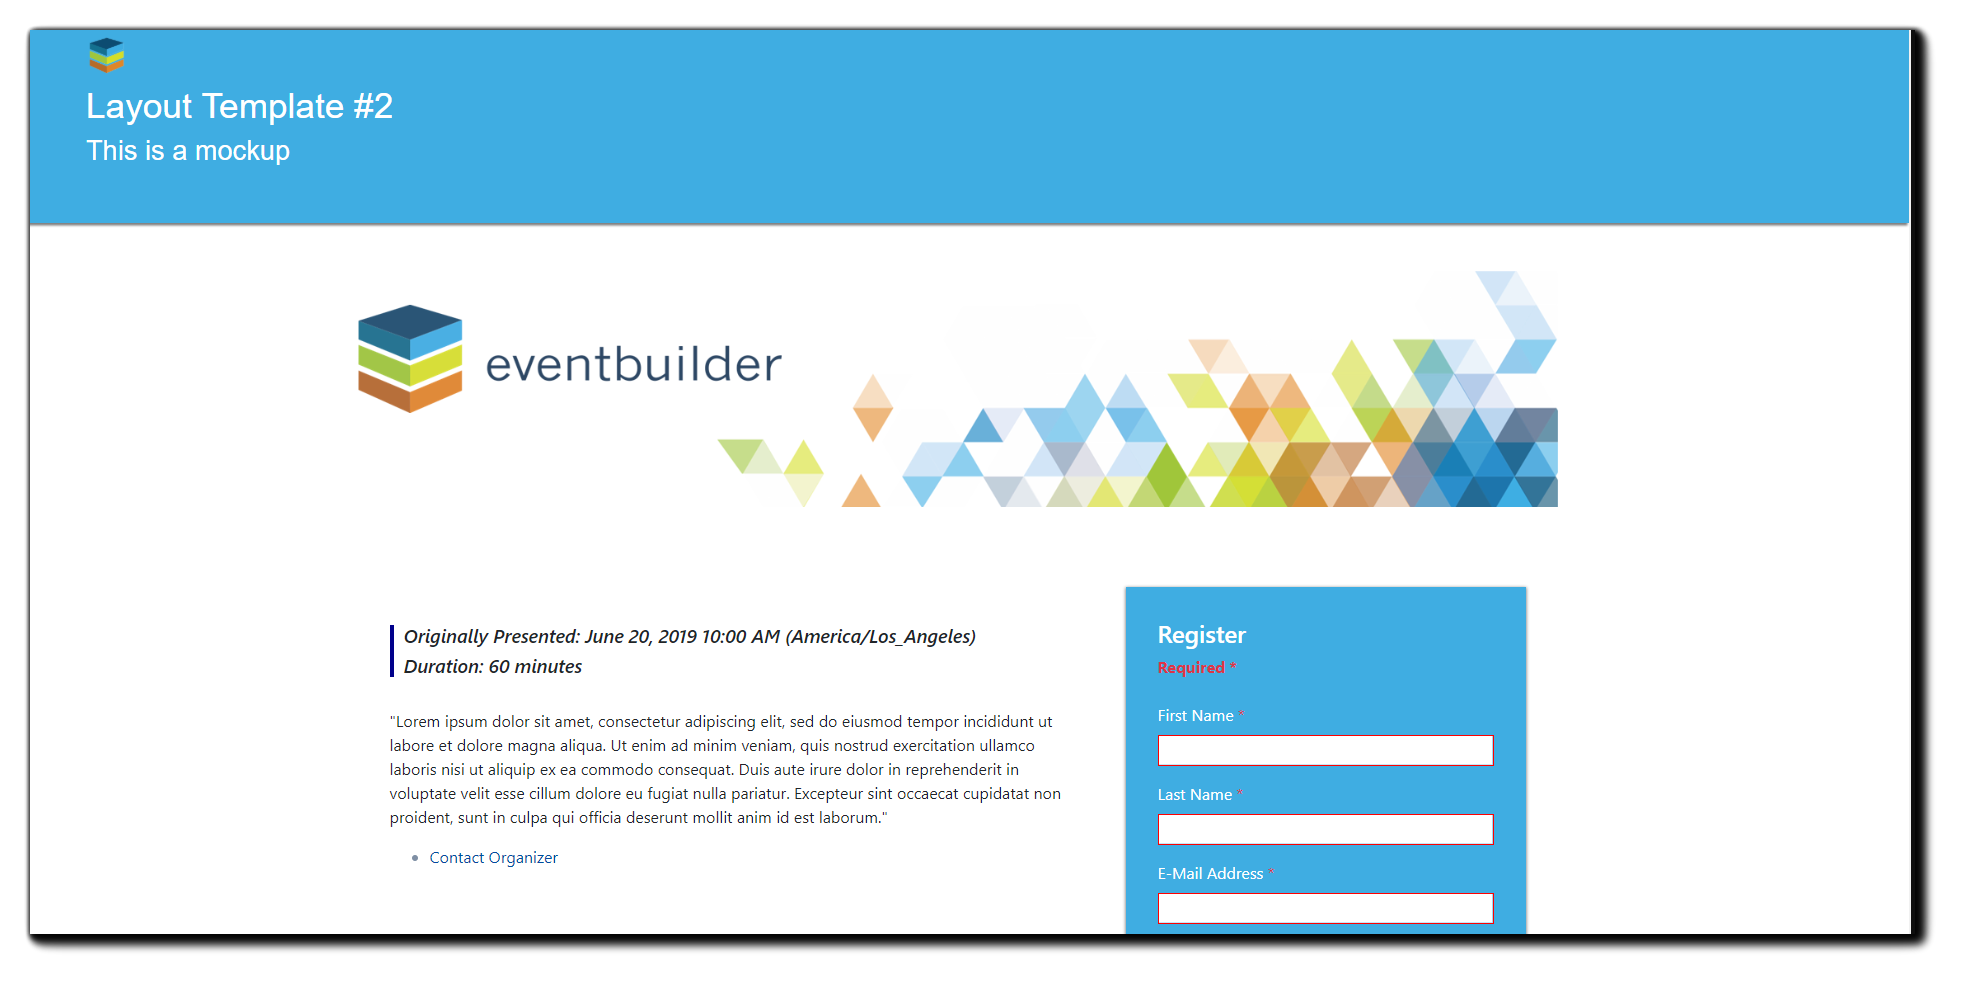 EventBuilder new layout option: Marquee - event info along the top.